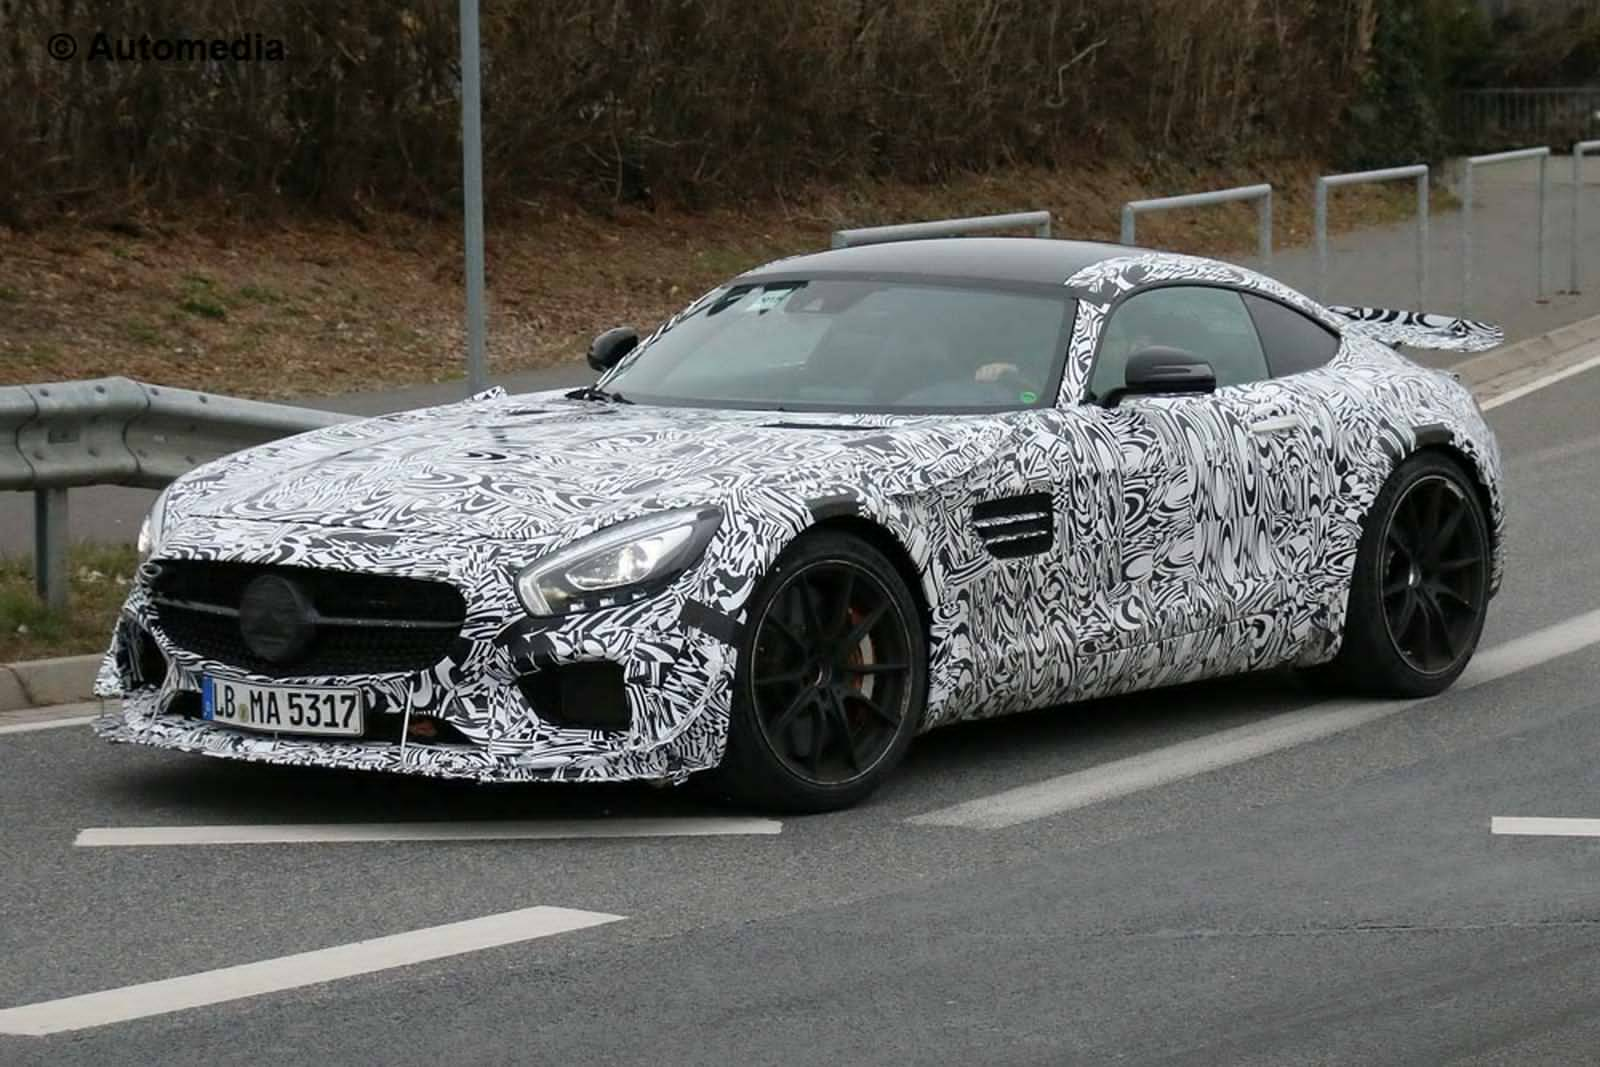 2015 Amg Gt >> Coming Soon: The Mercedes-AMG GT R